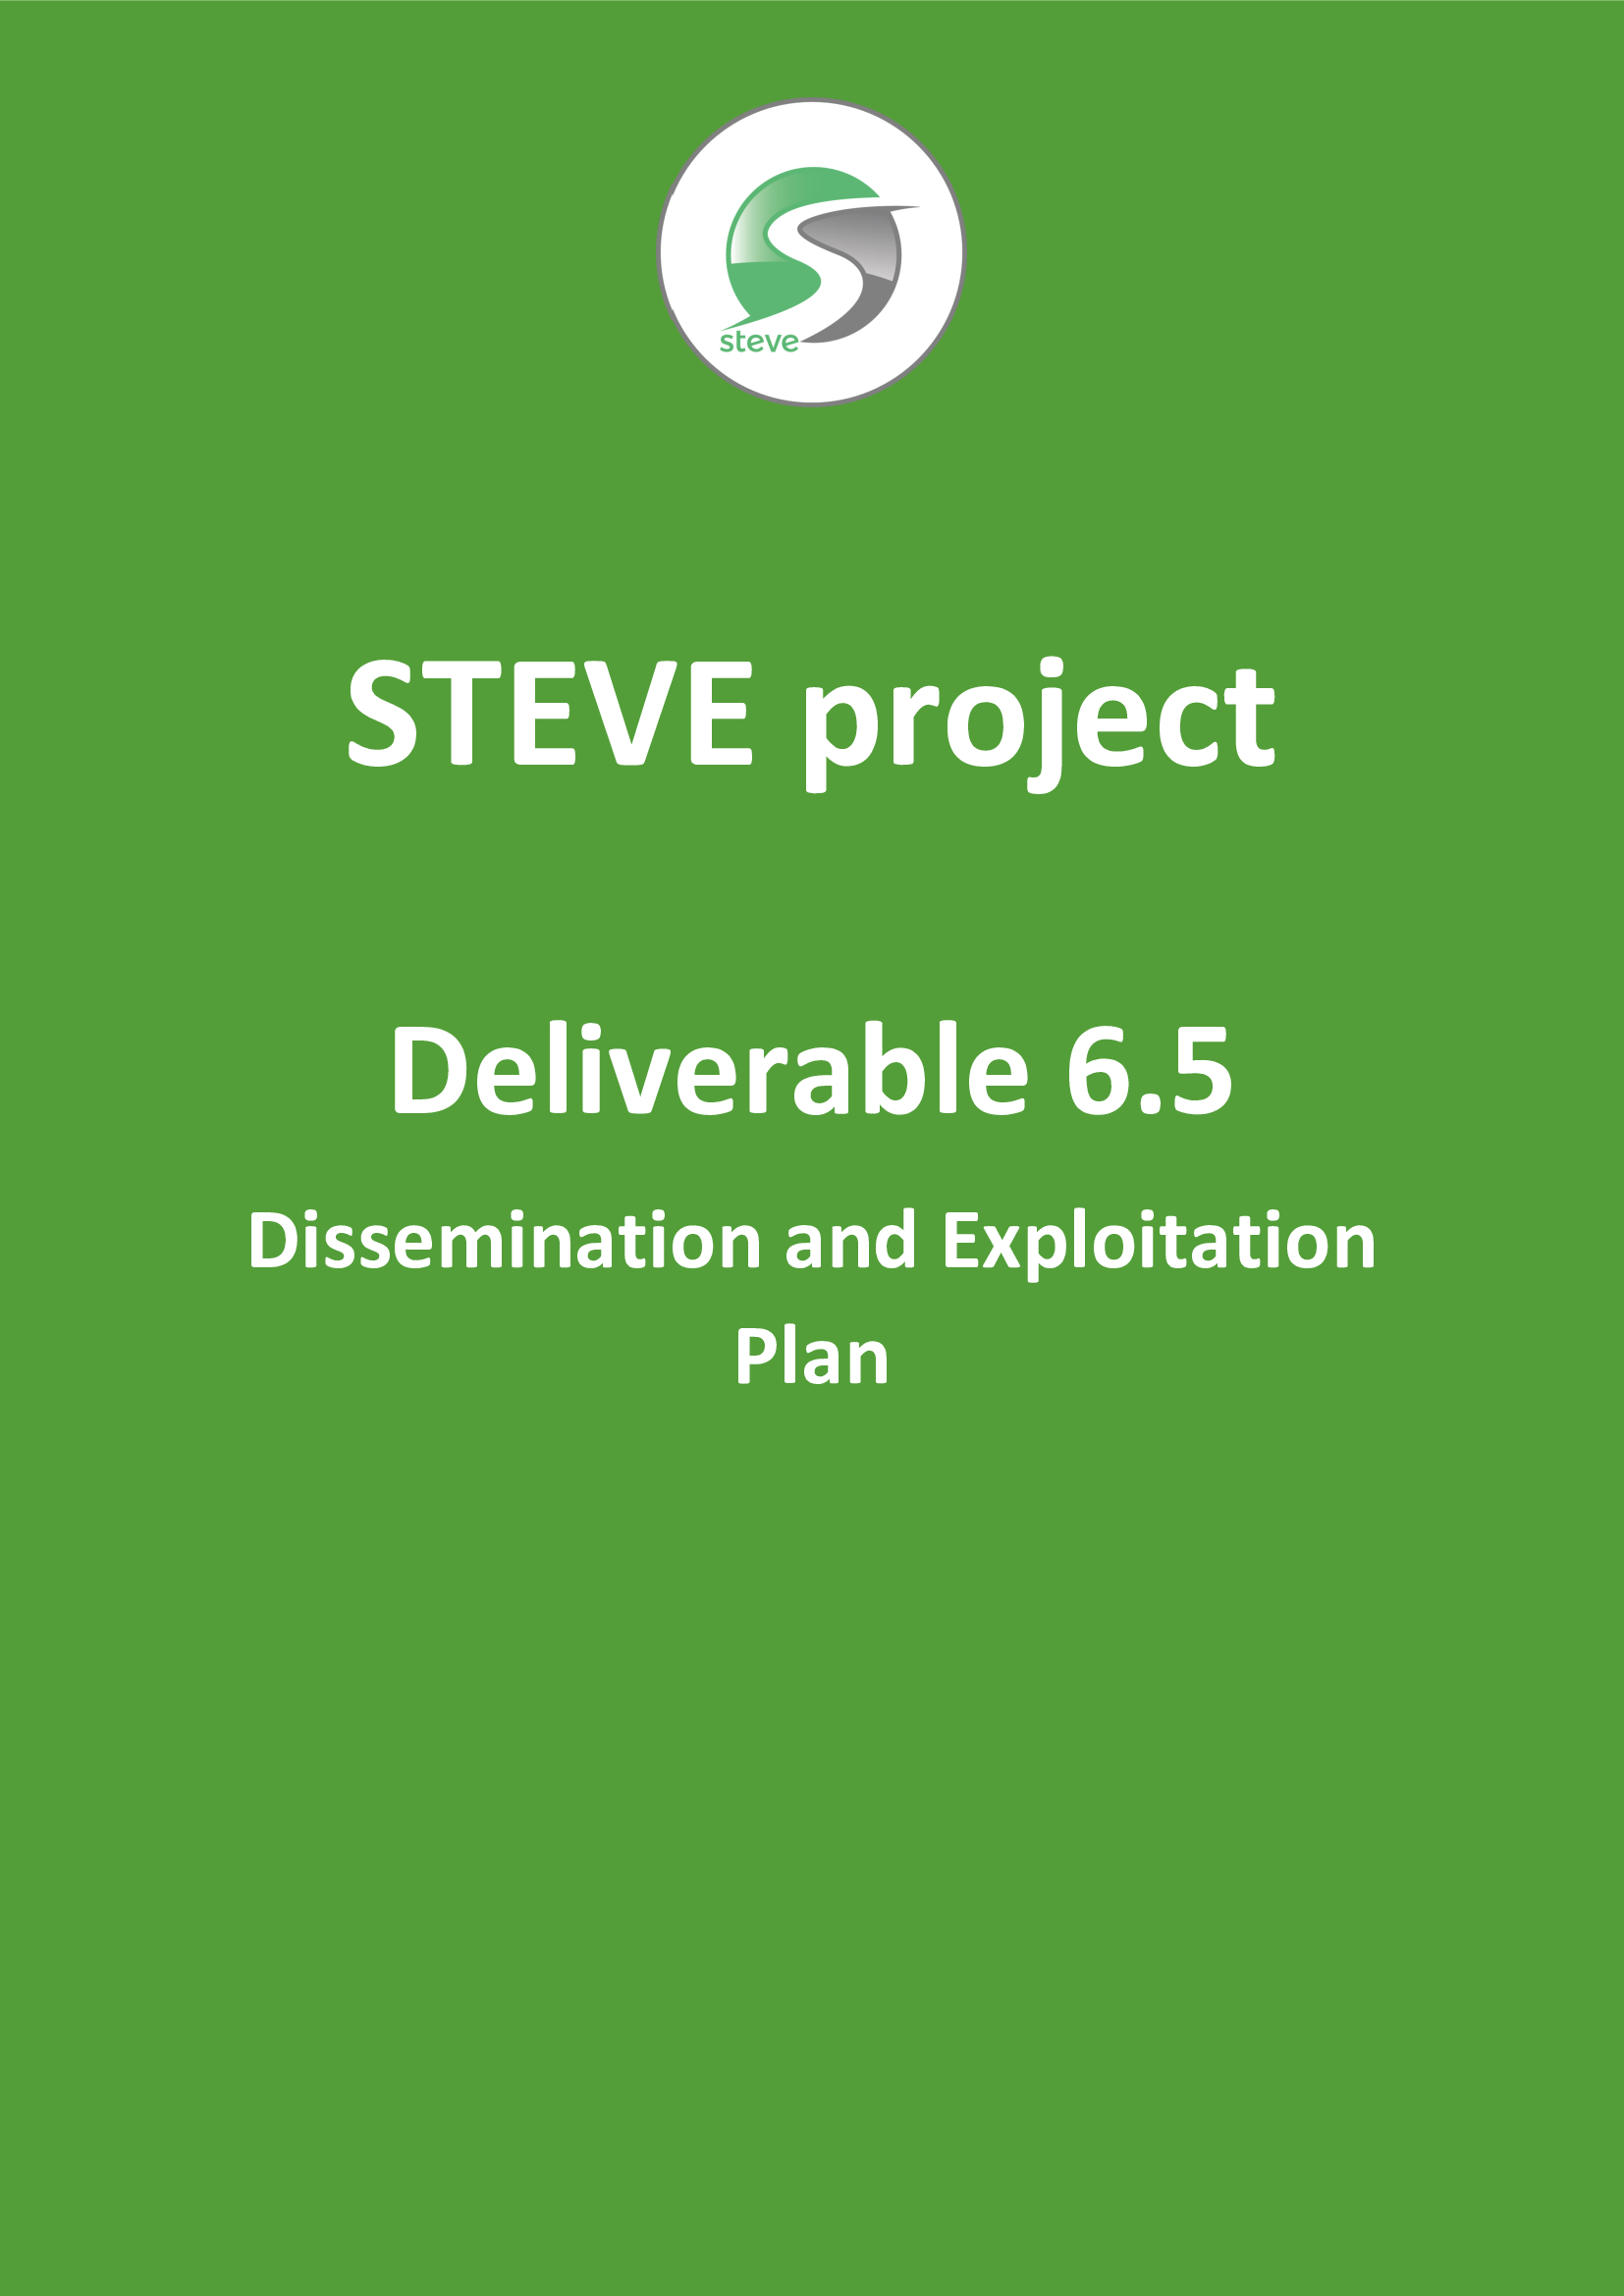 Deliverable 6.5